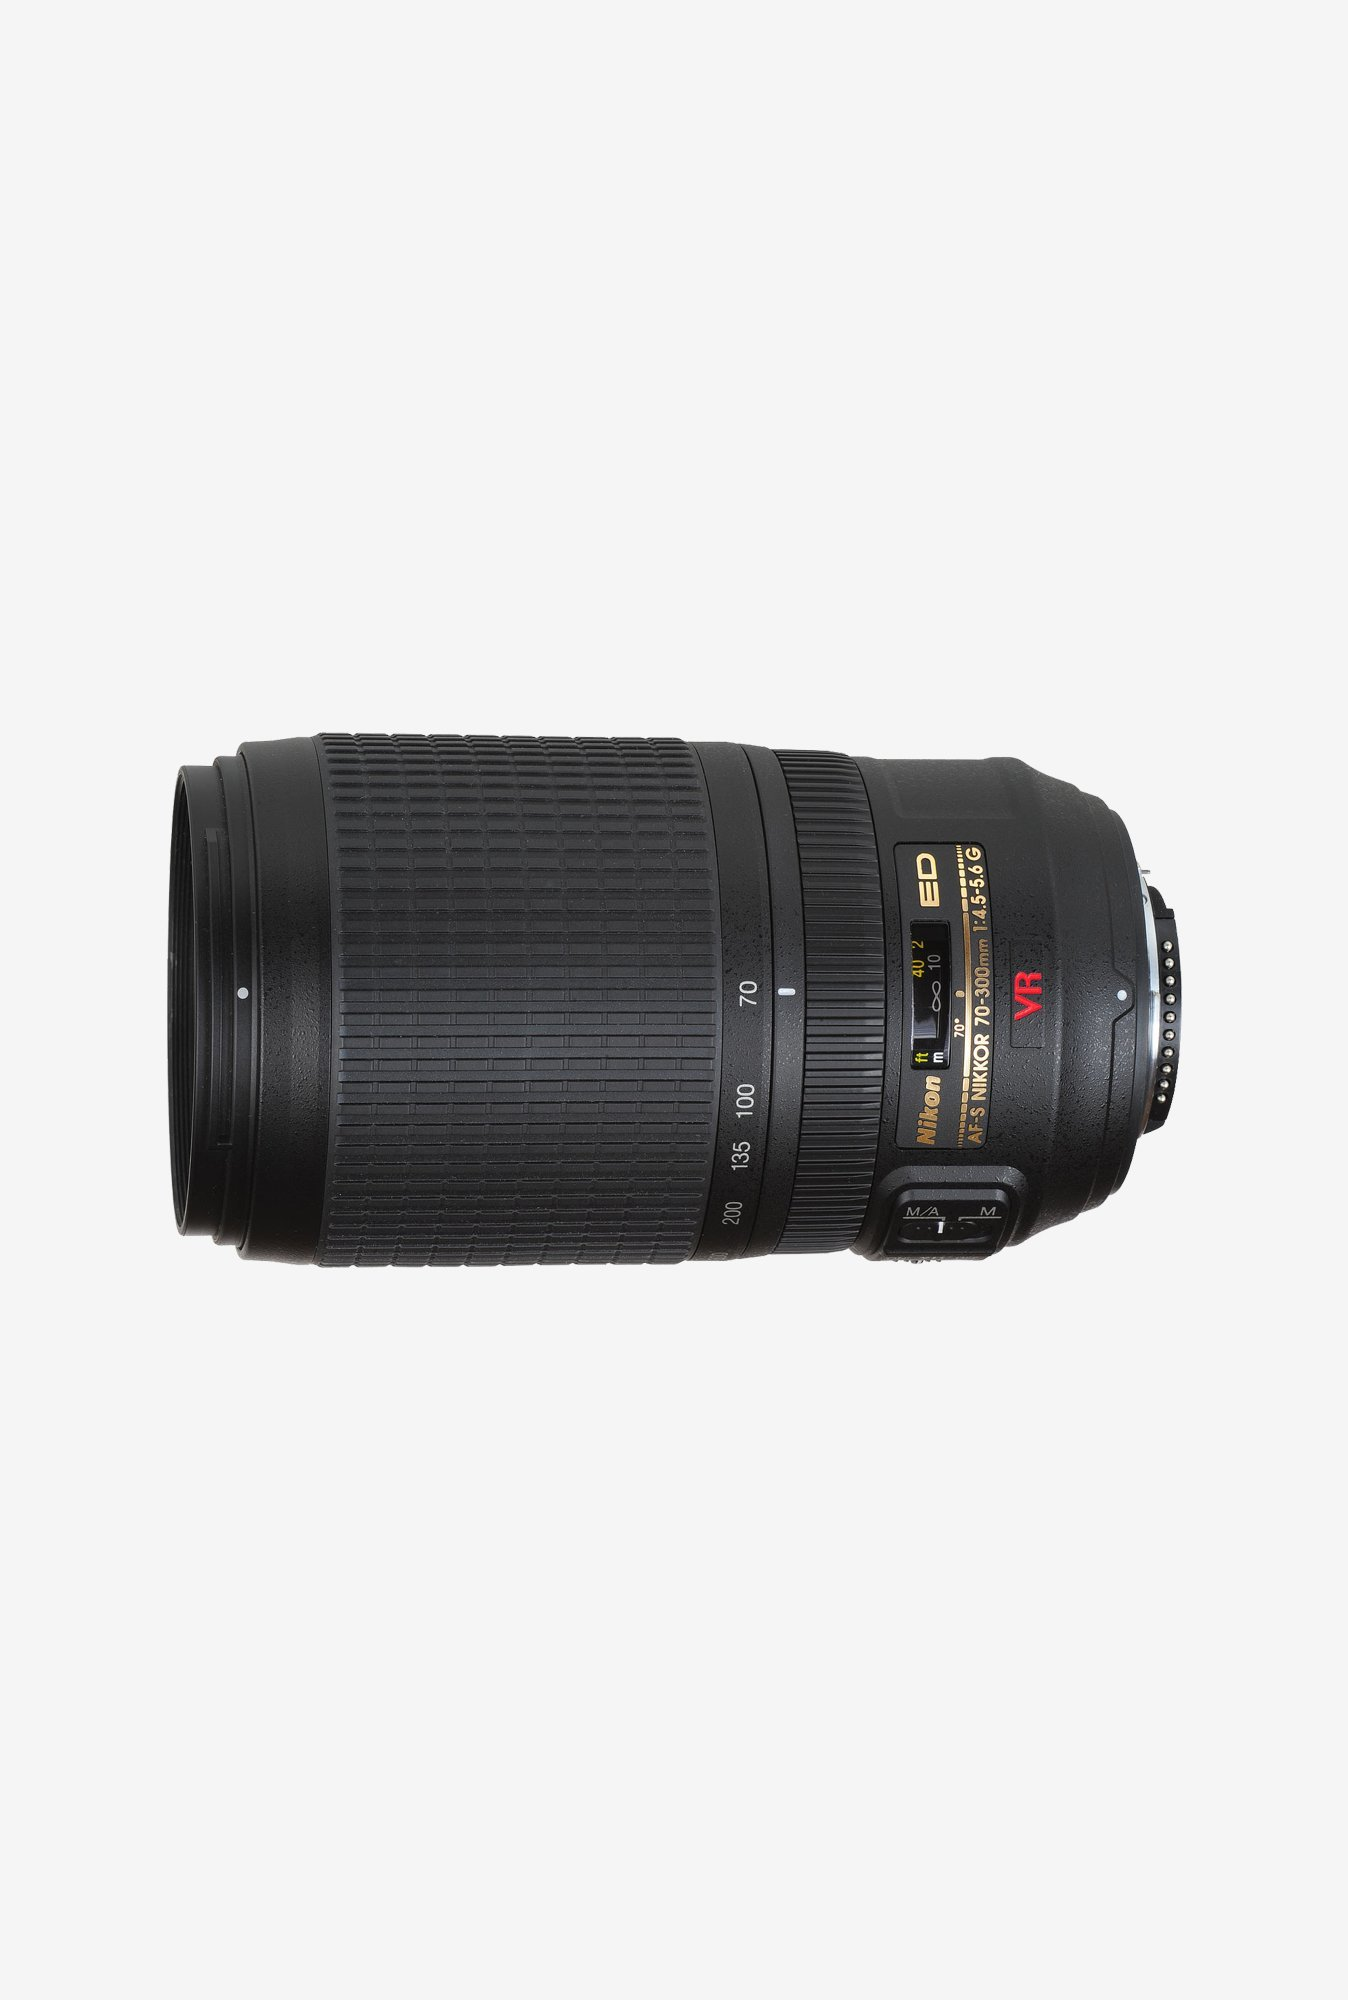 Nikon AF-S VR Zoom 70-300mm f4.5-5.6 G IF-ED Lens